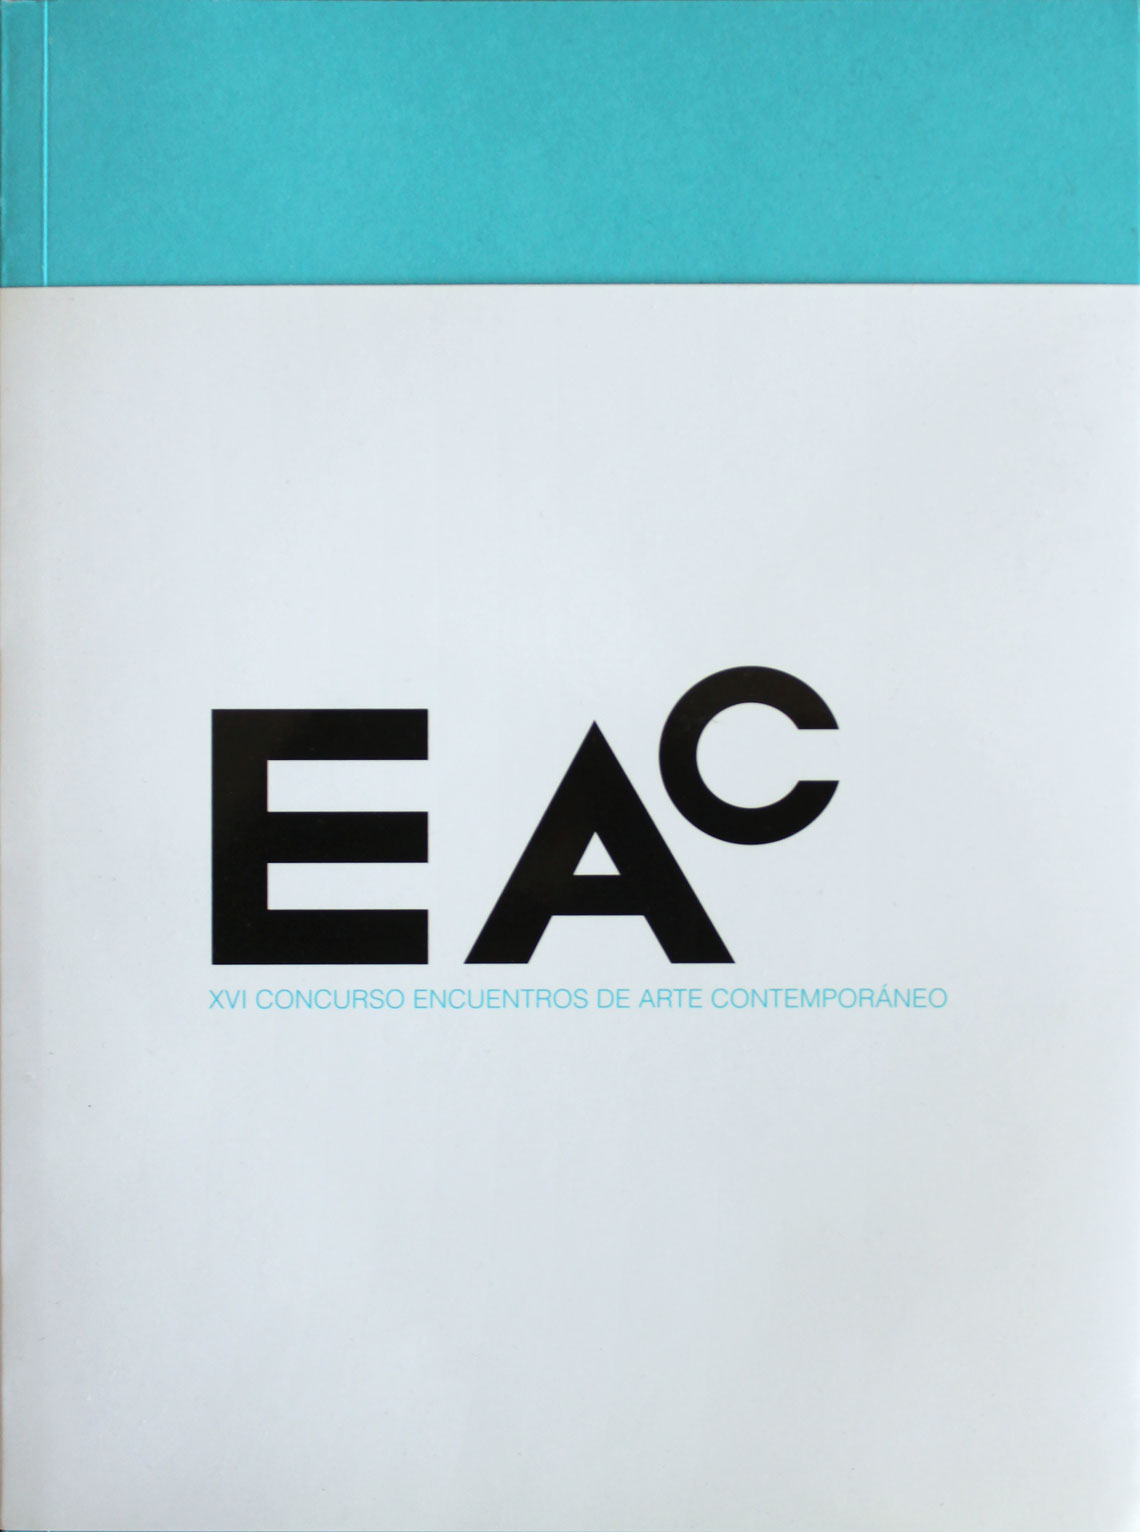 roberto-lopez-exhibition-catalogue-eac-2016-encuentros-de-arte-contemporaneo-alicante